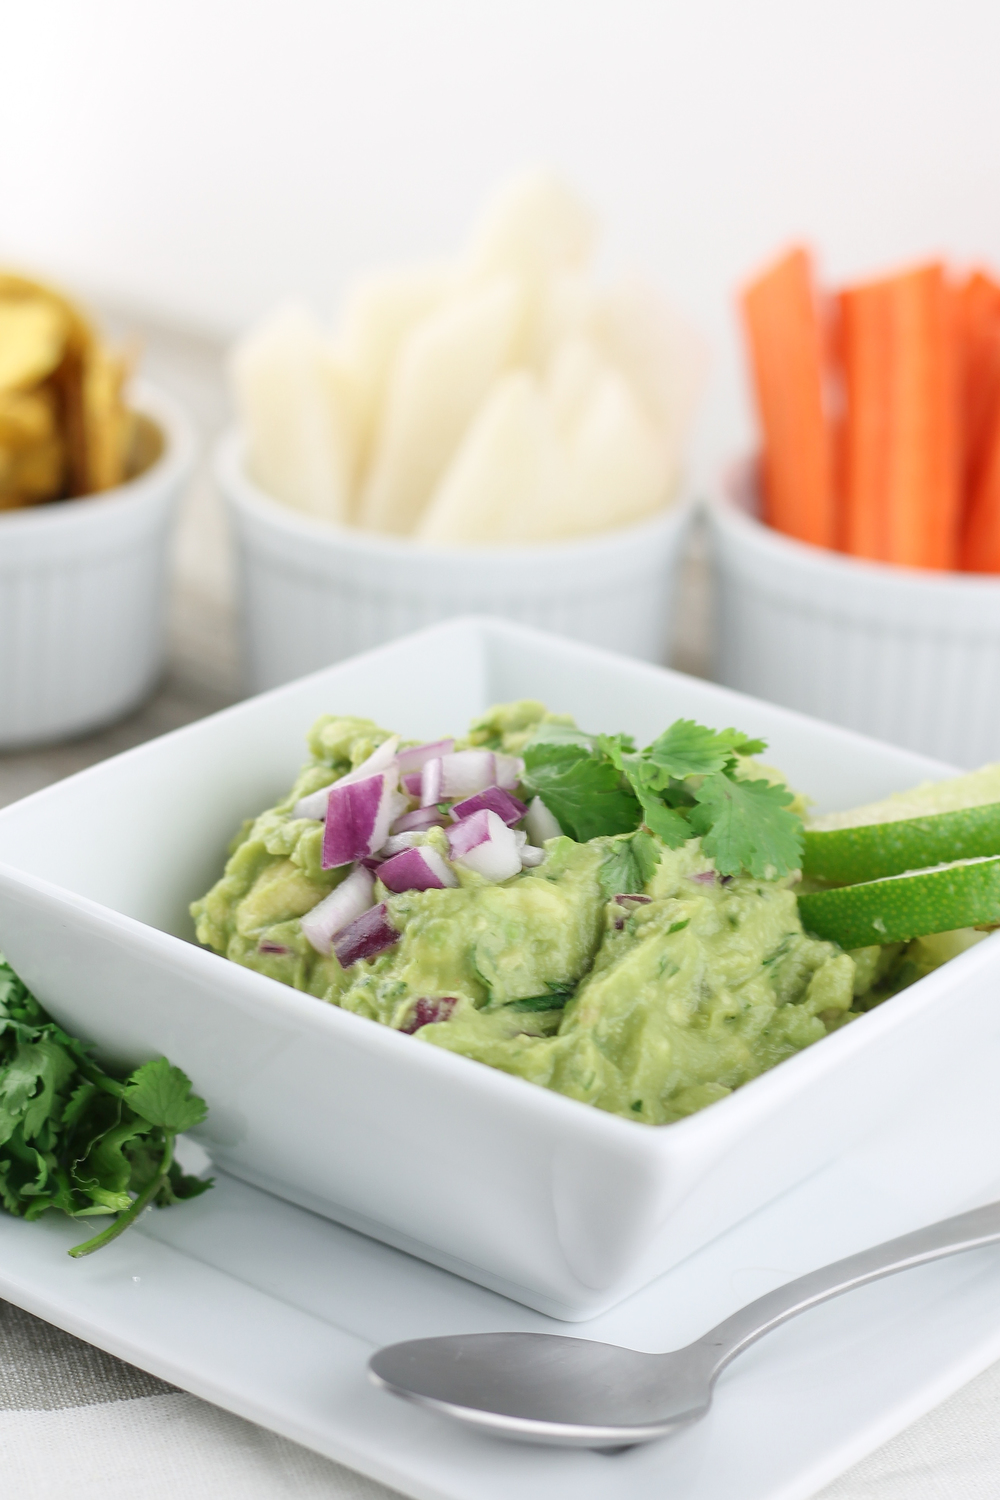 Healthy Vegetable Dip, Healthy Fats, Guacamole Dip, Healthy Appetizers